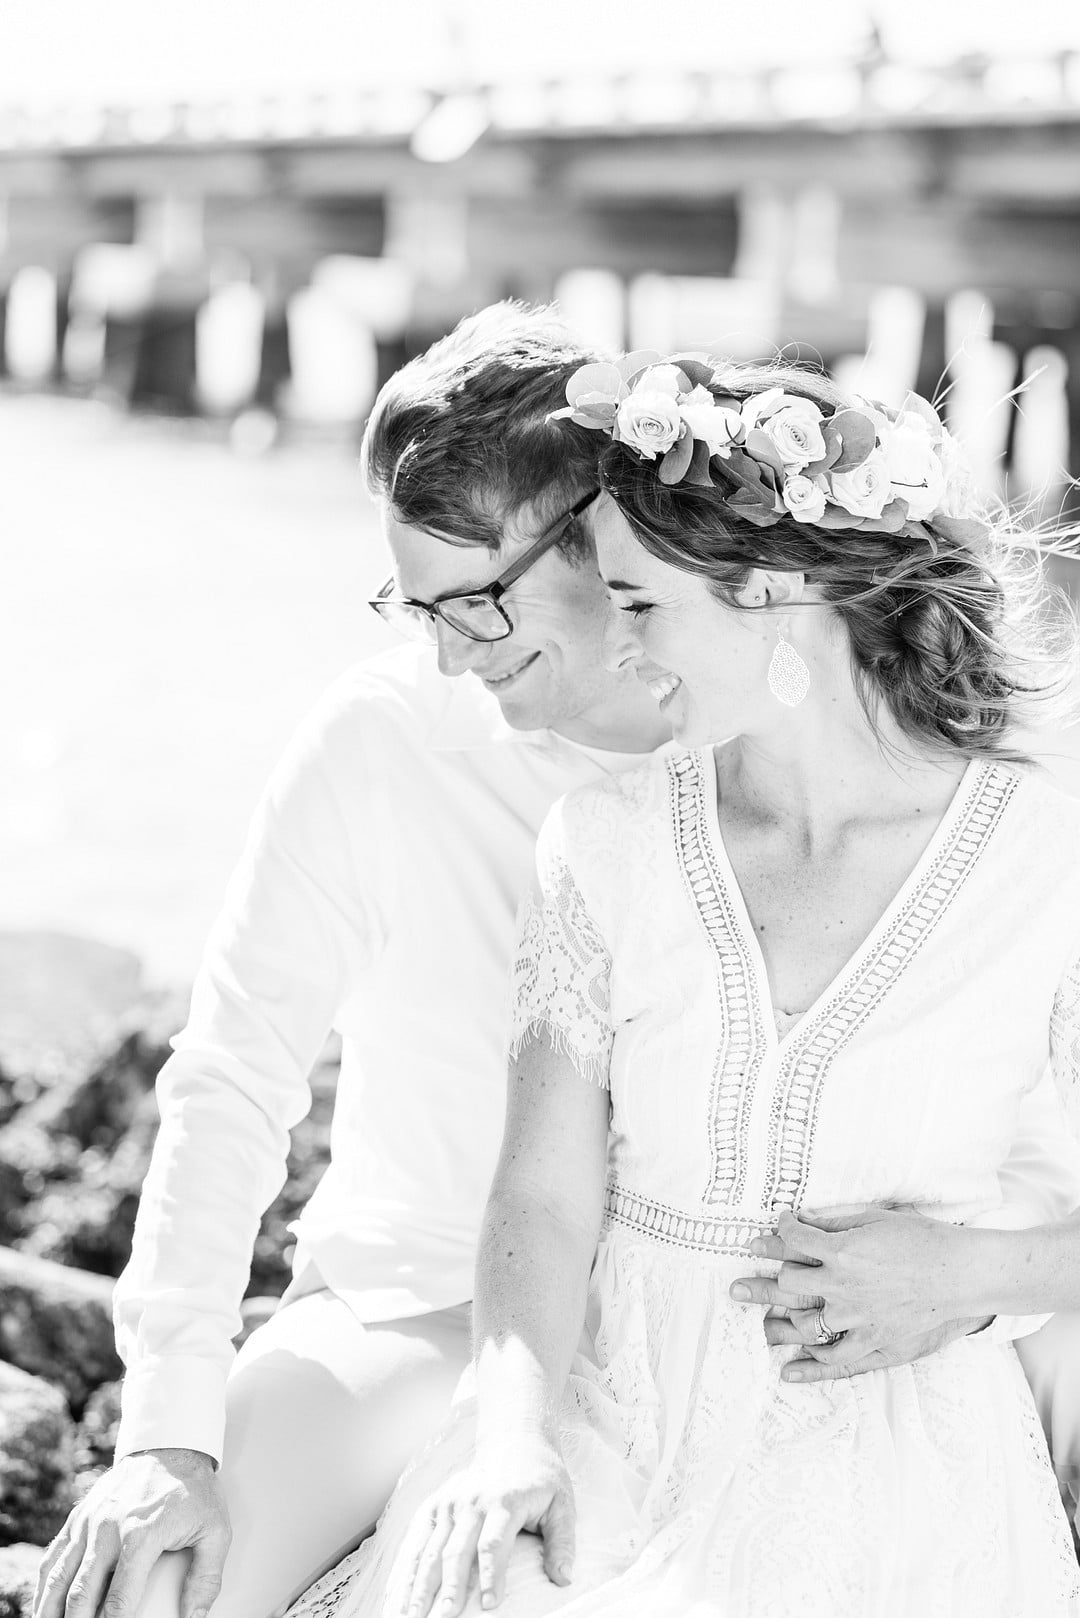 Romantic, Spring Styled Wedding with Horses on the Beach_Christine Austin Photography_©christineaustinphotography_2021_RomanticBeachStyledShoot_Austin+Naomi_20_low